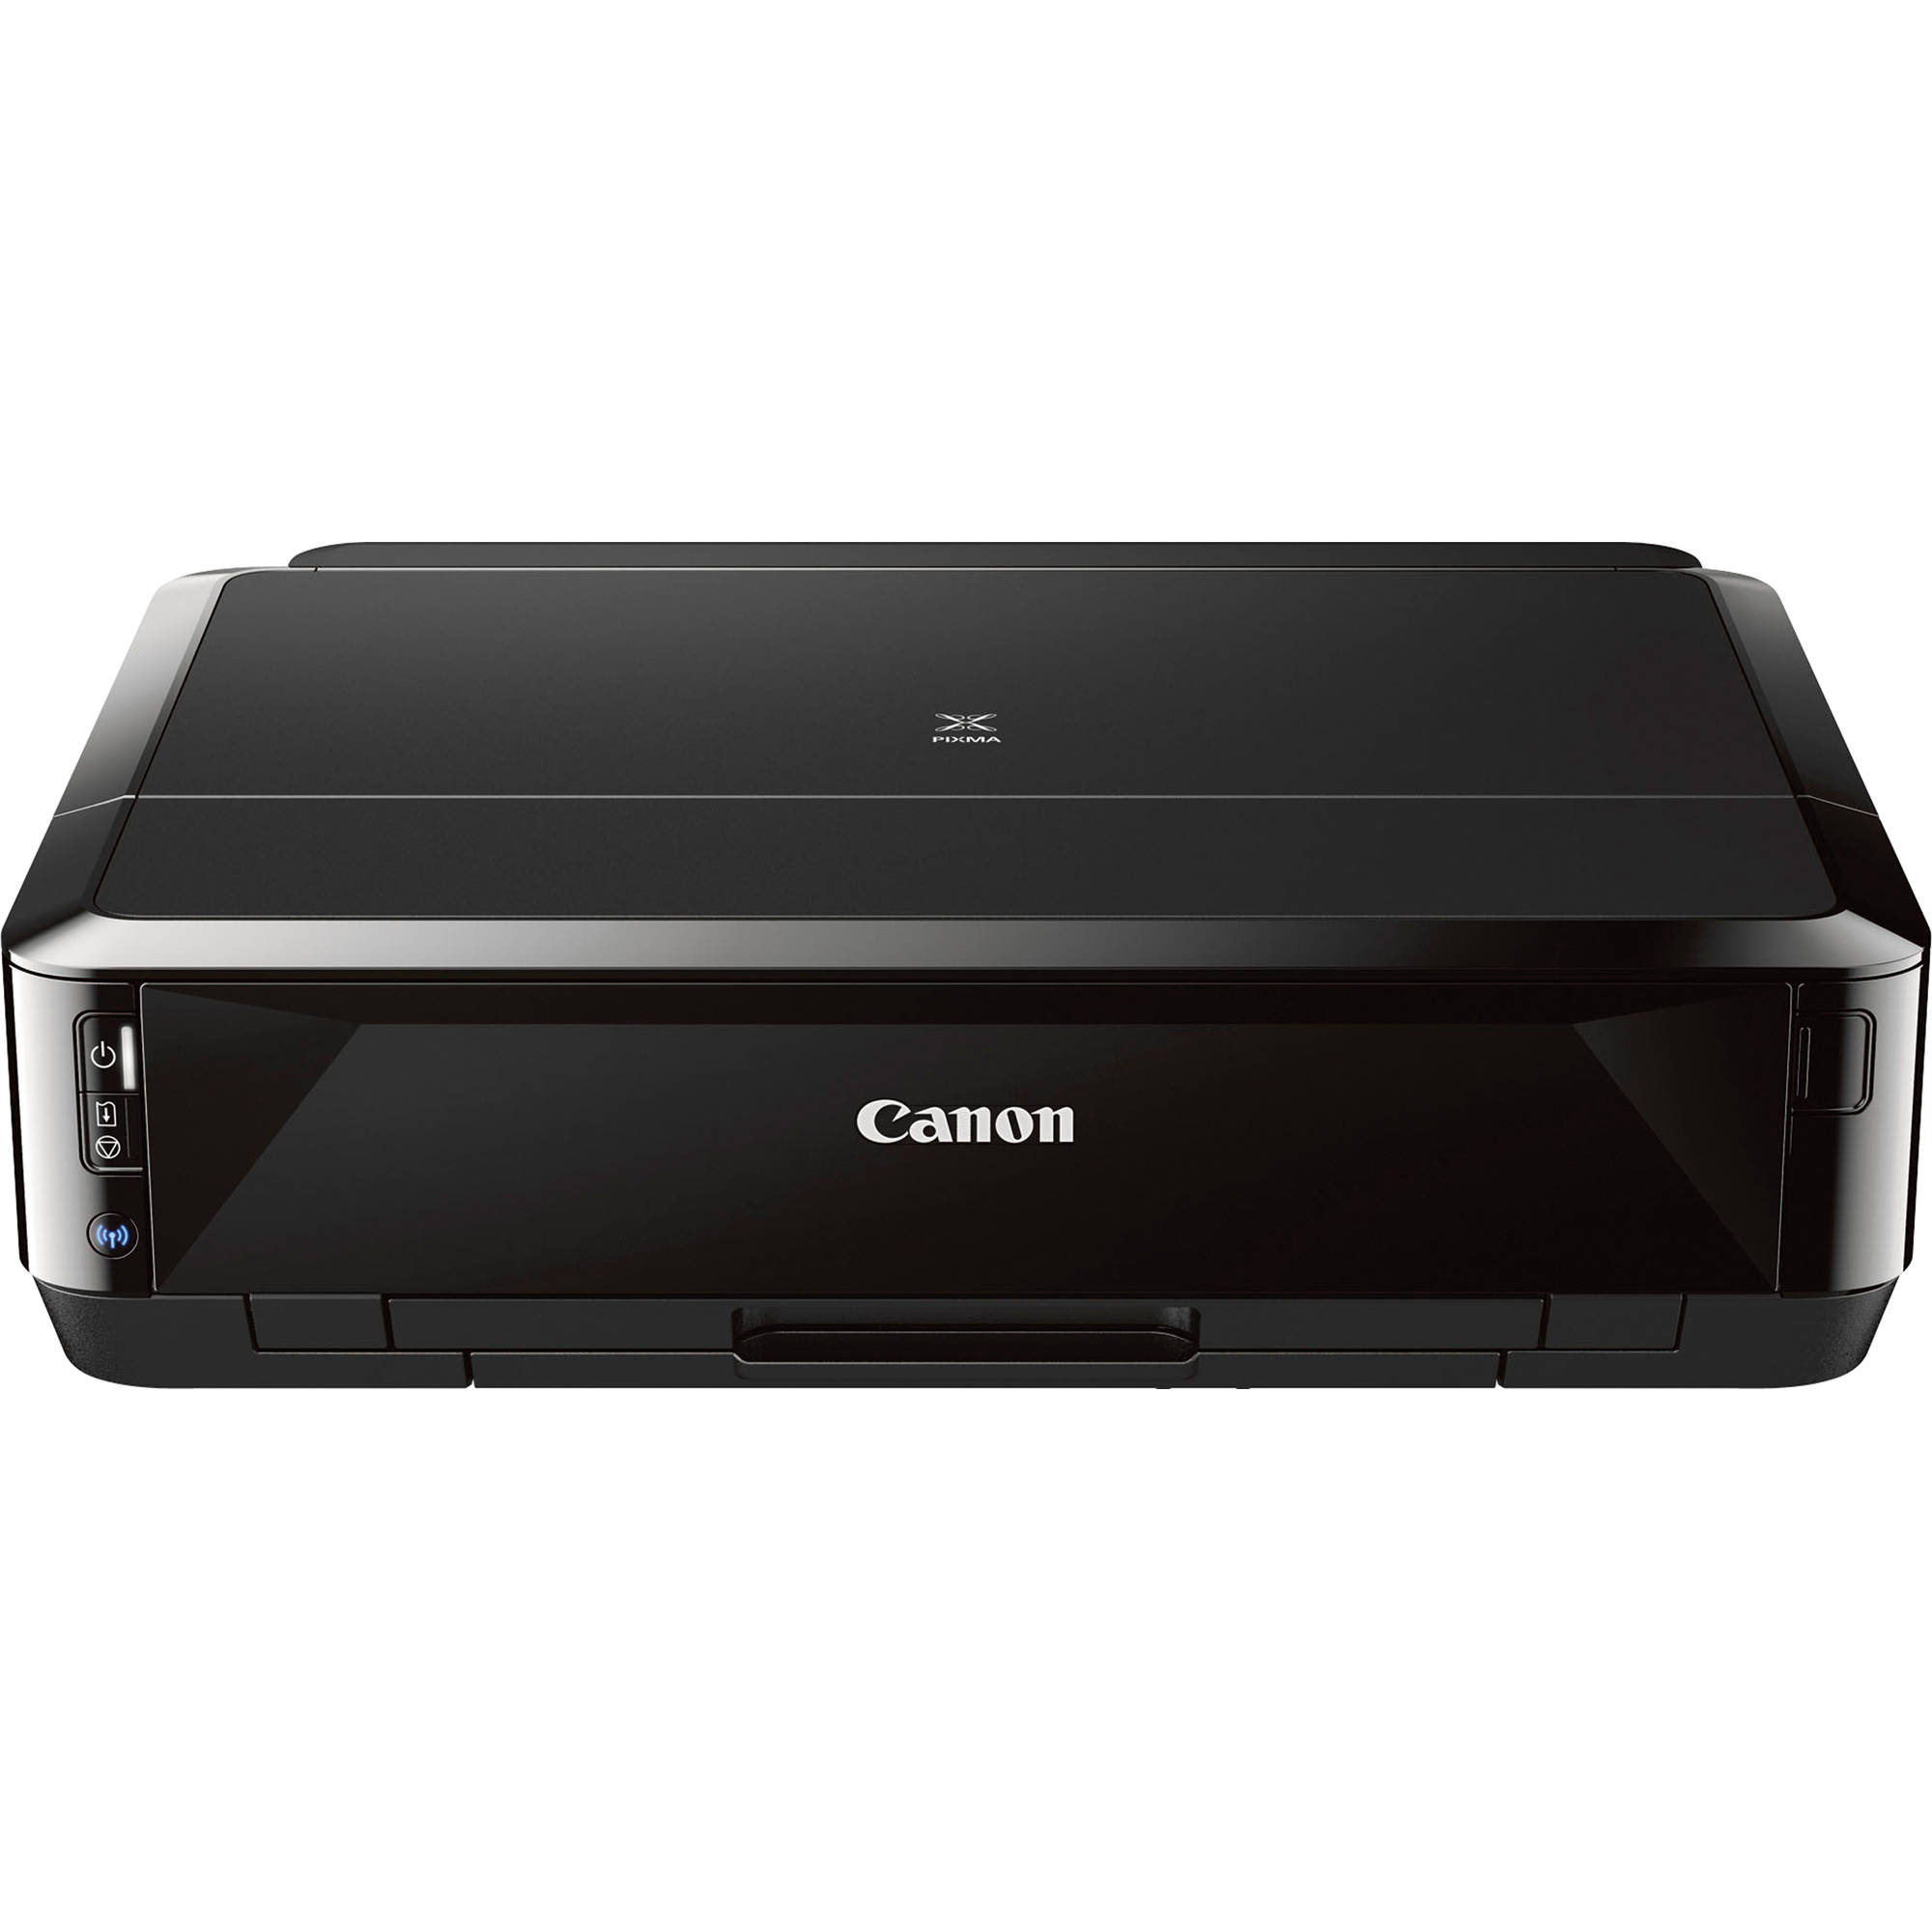 nakshatra systems canon service center in mogappair, nakshatra systems canon printer service center in mogappair